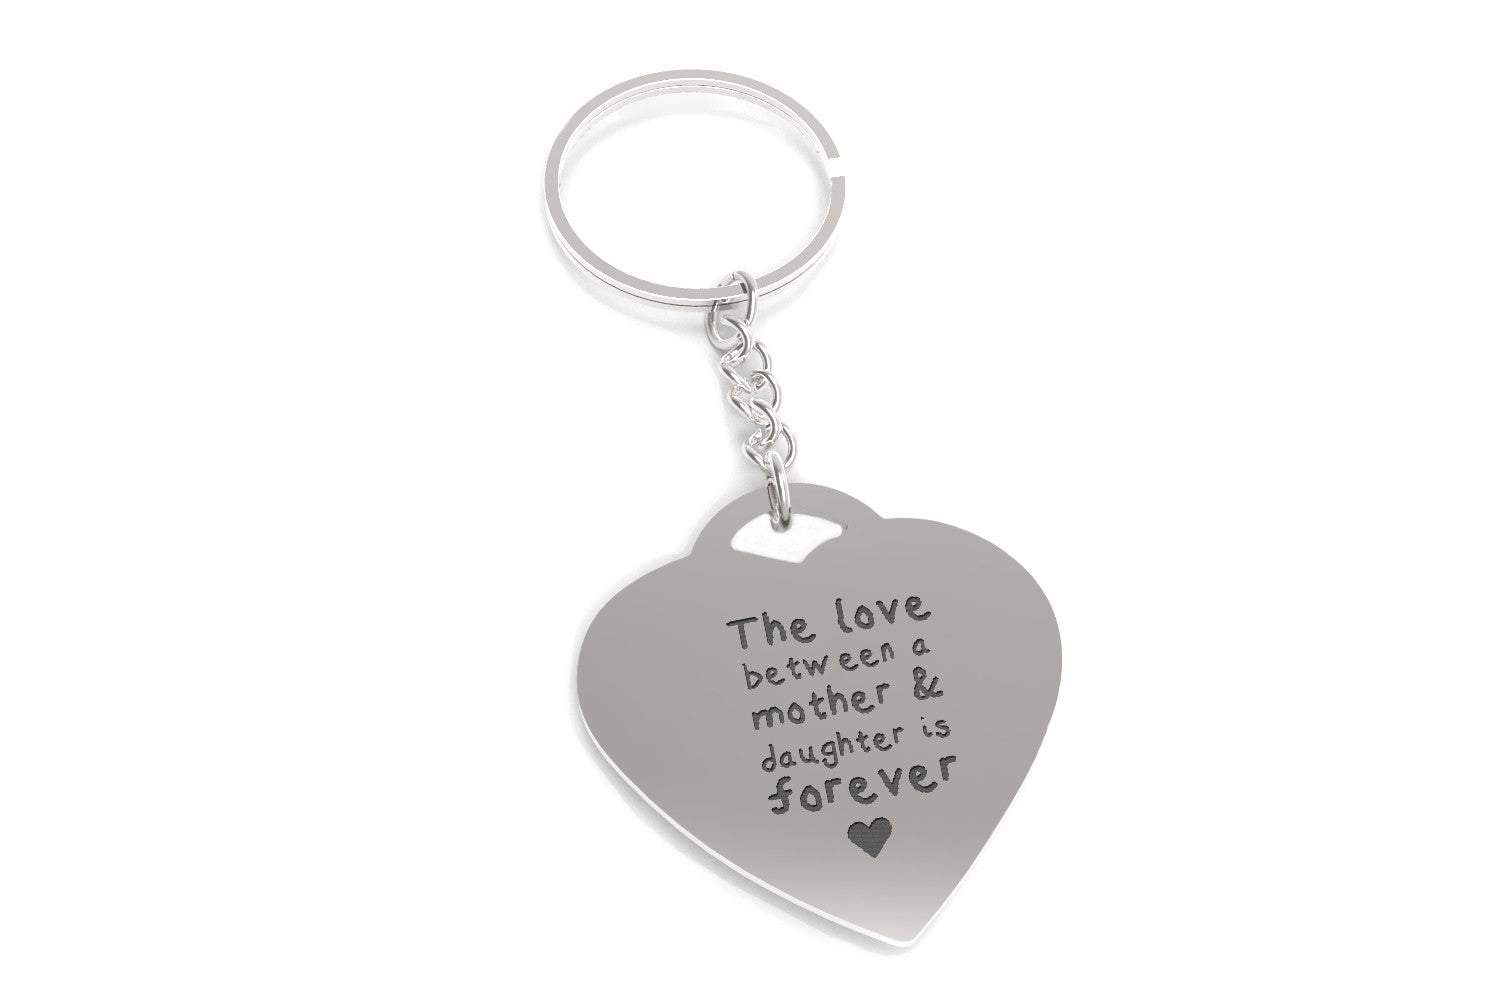 Love Between Mother N Daughter Forever Heart Shaped Key Chain Gift